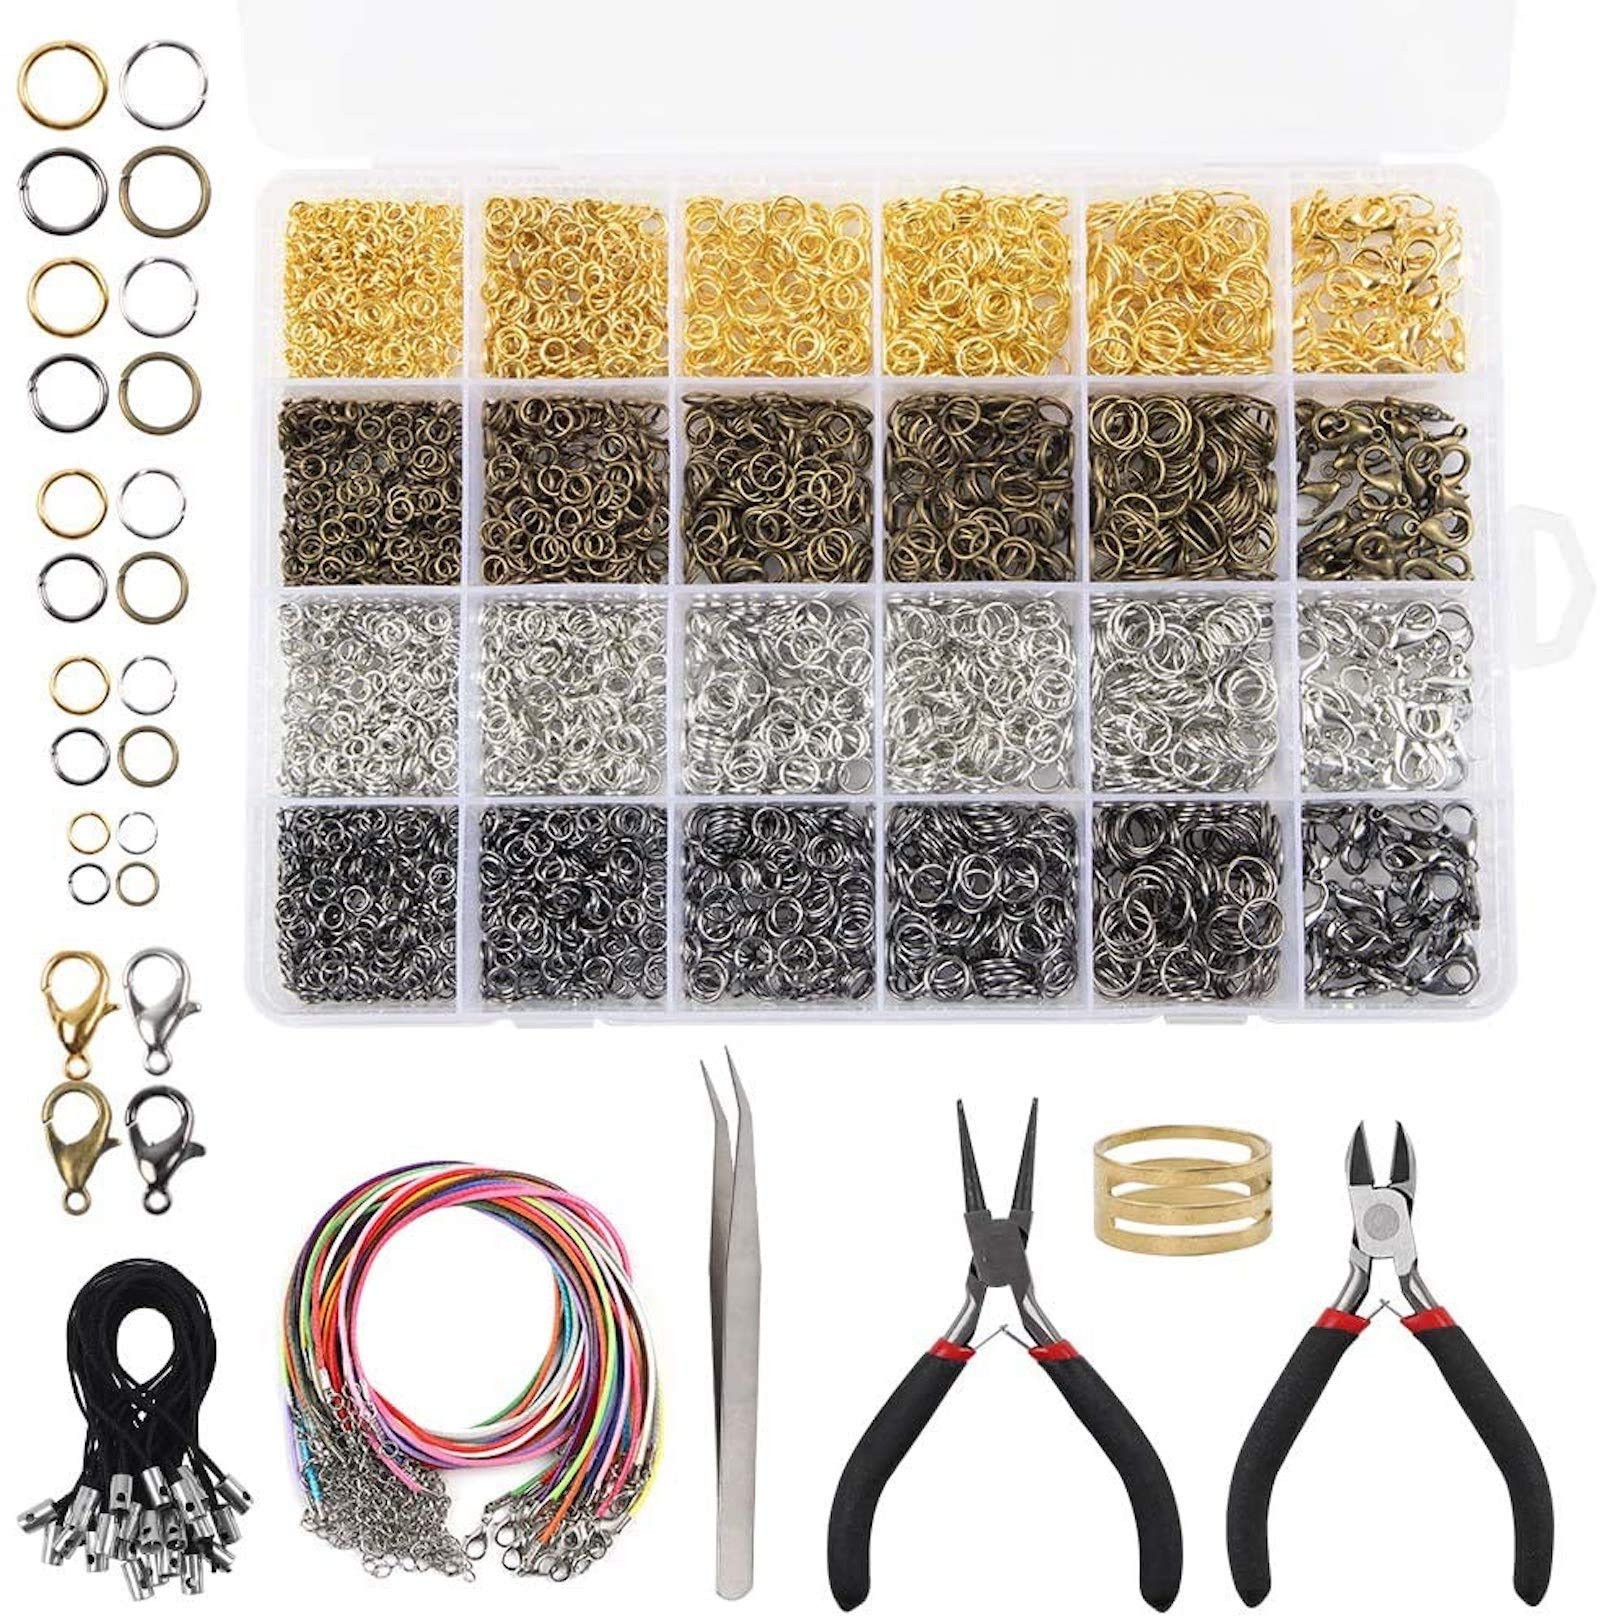 6 Colors Necklaces Repair with 1 Pc Jump Ring Opener and 1 Pc Tweezers BQTQ 3180 Pieces Open Jump Rings Lobster Clasps Kit for Jewelry Making Earrings Bracelets